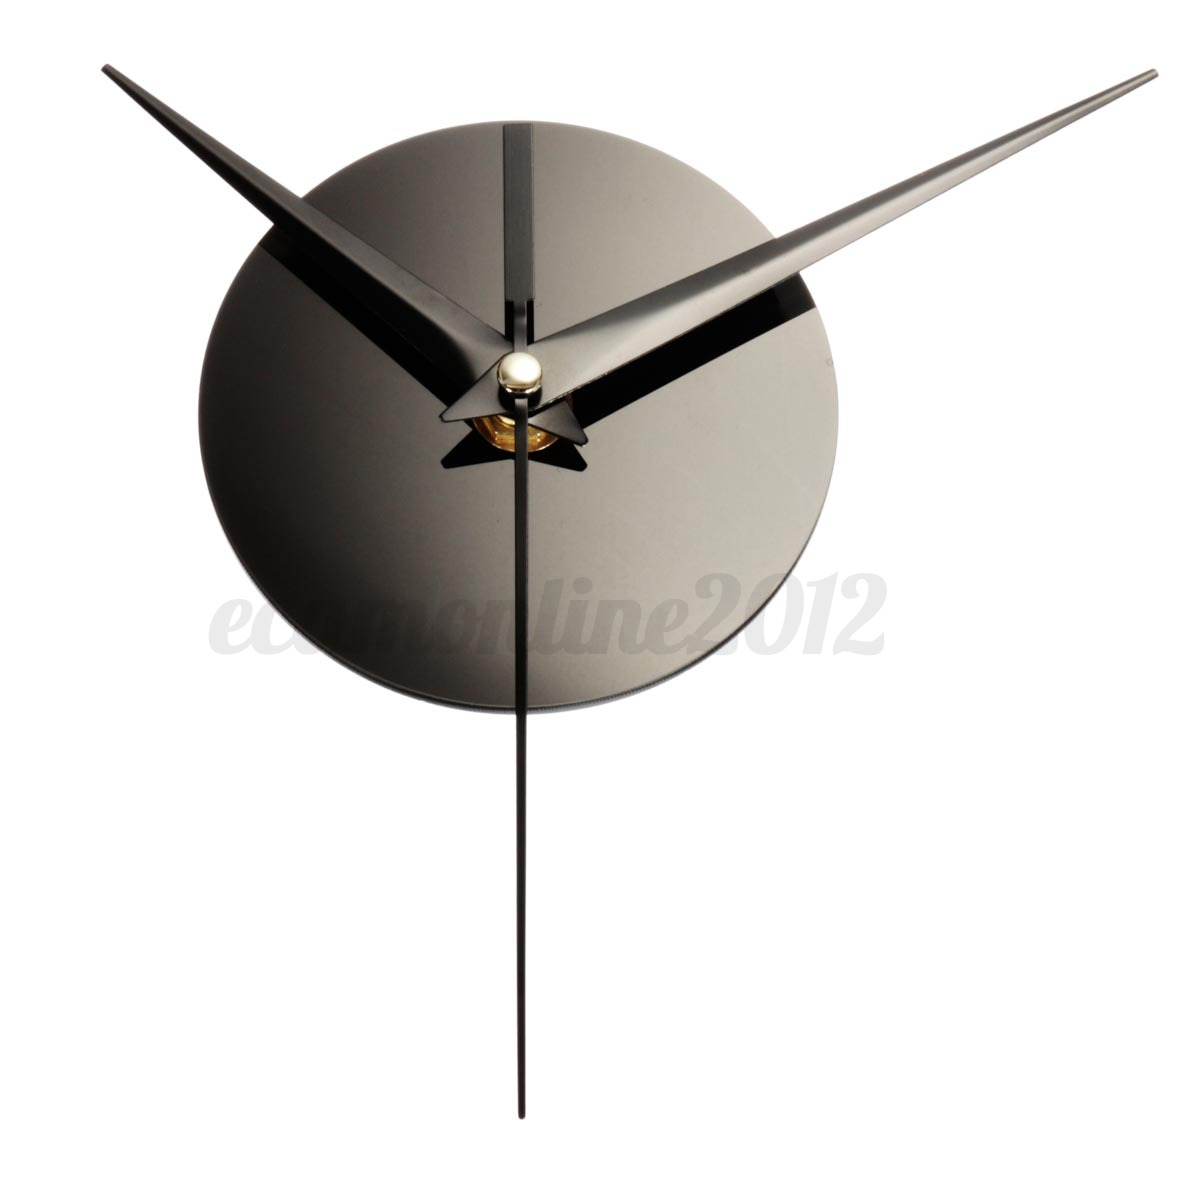 3d horloge murale diy art moderne bricolage pendule mur. Black Bedroom Furniture Sets. Home Design Ideas